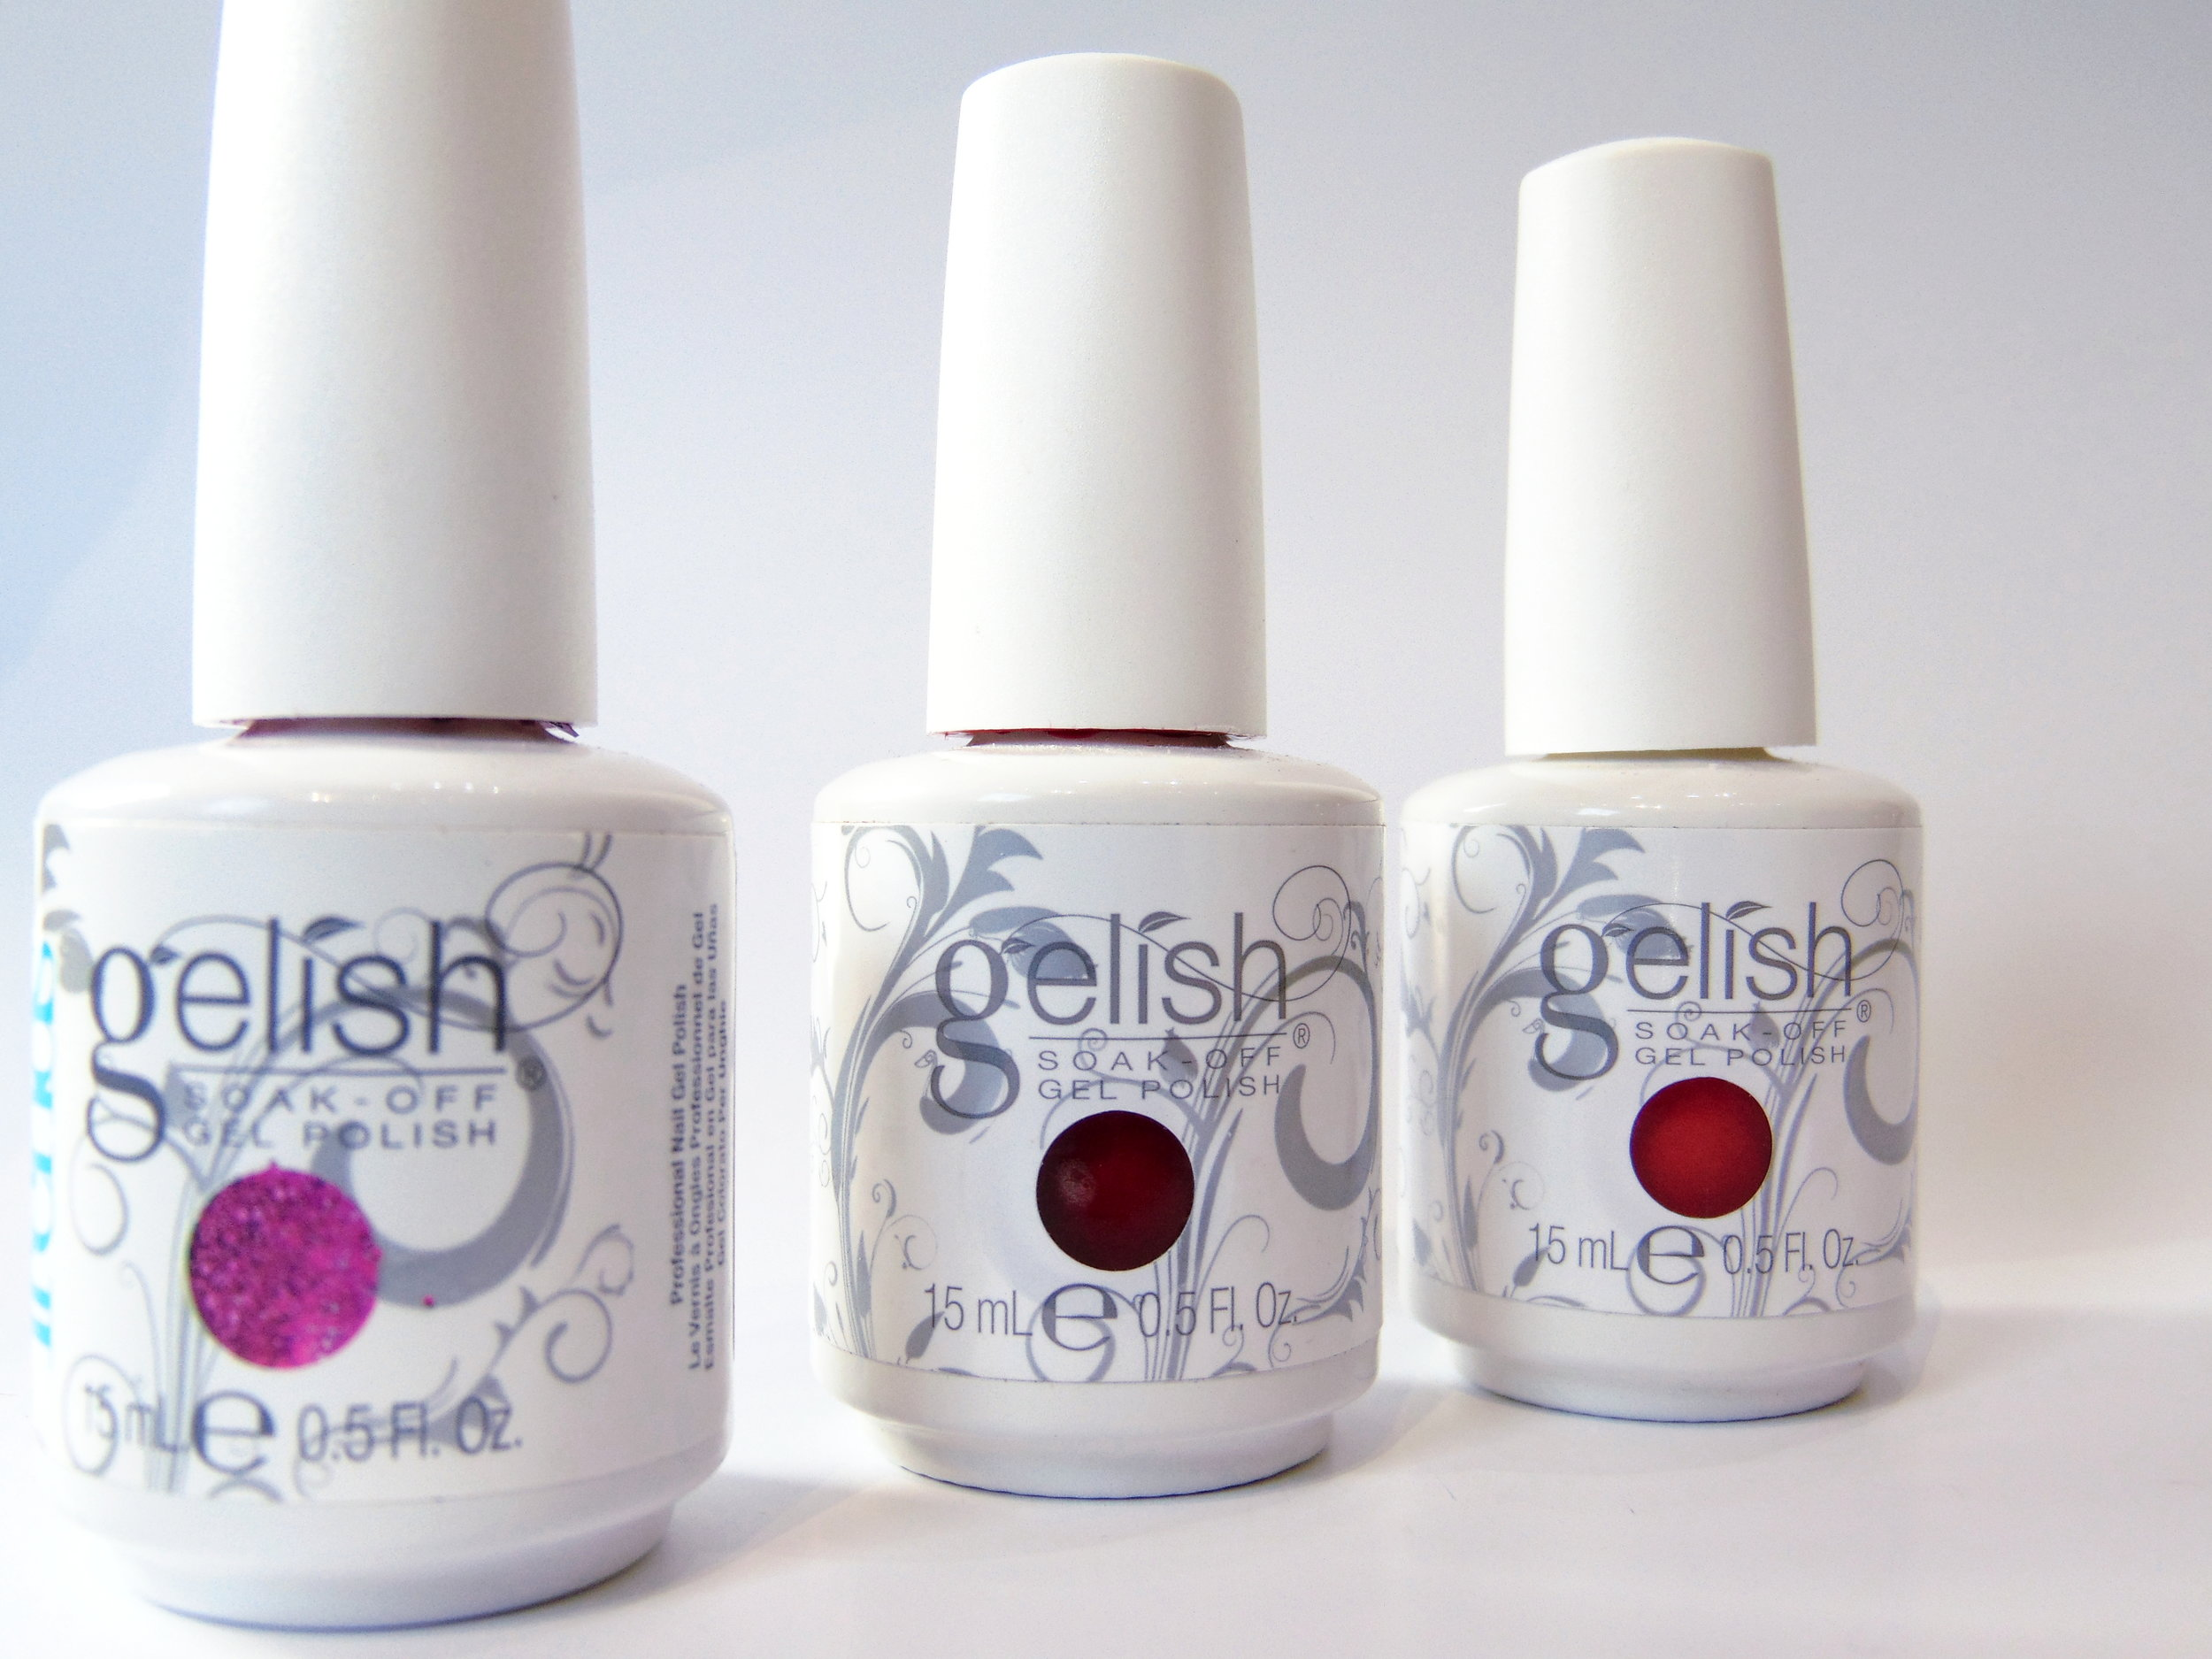 Venus-Beauty-Hair-Salon-Tavistock-Devon-Blog-Brand-Favourite-Nail-Technician-Gelish-Nail-Harmony-Manicure-Pedicure-Gel.JPG